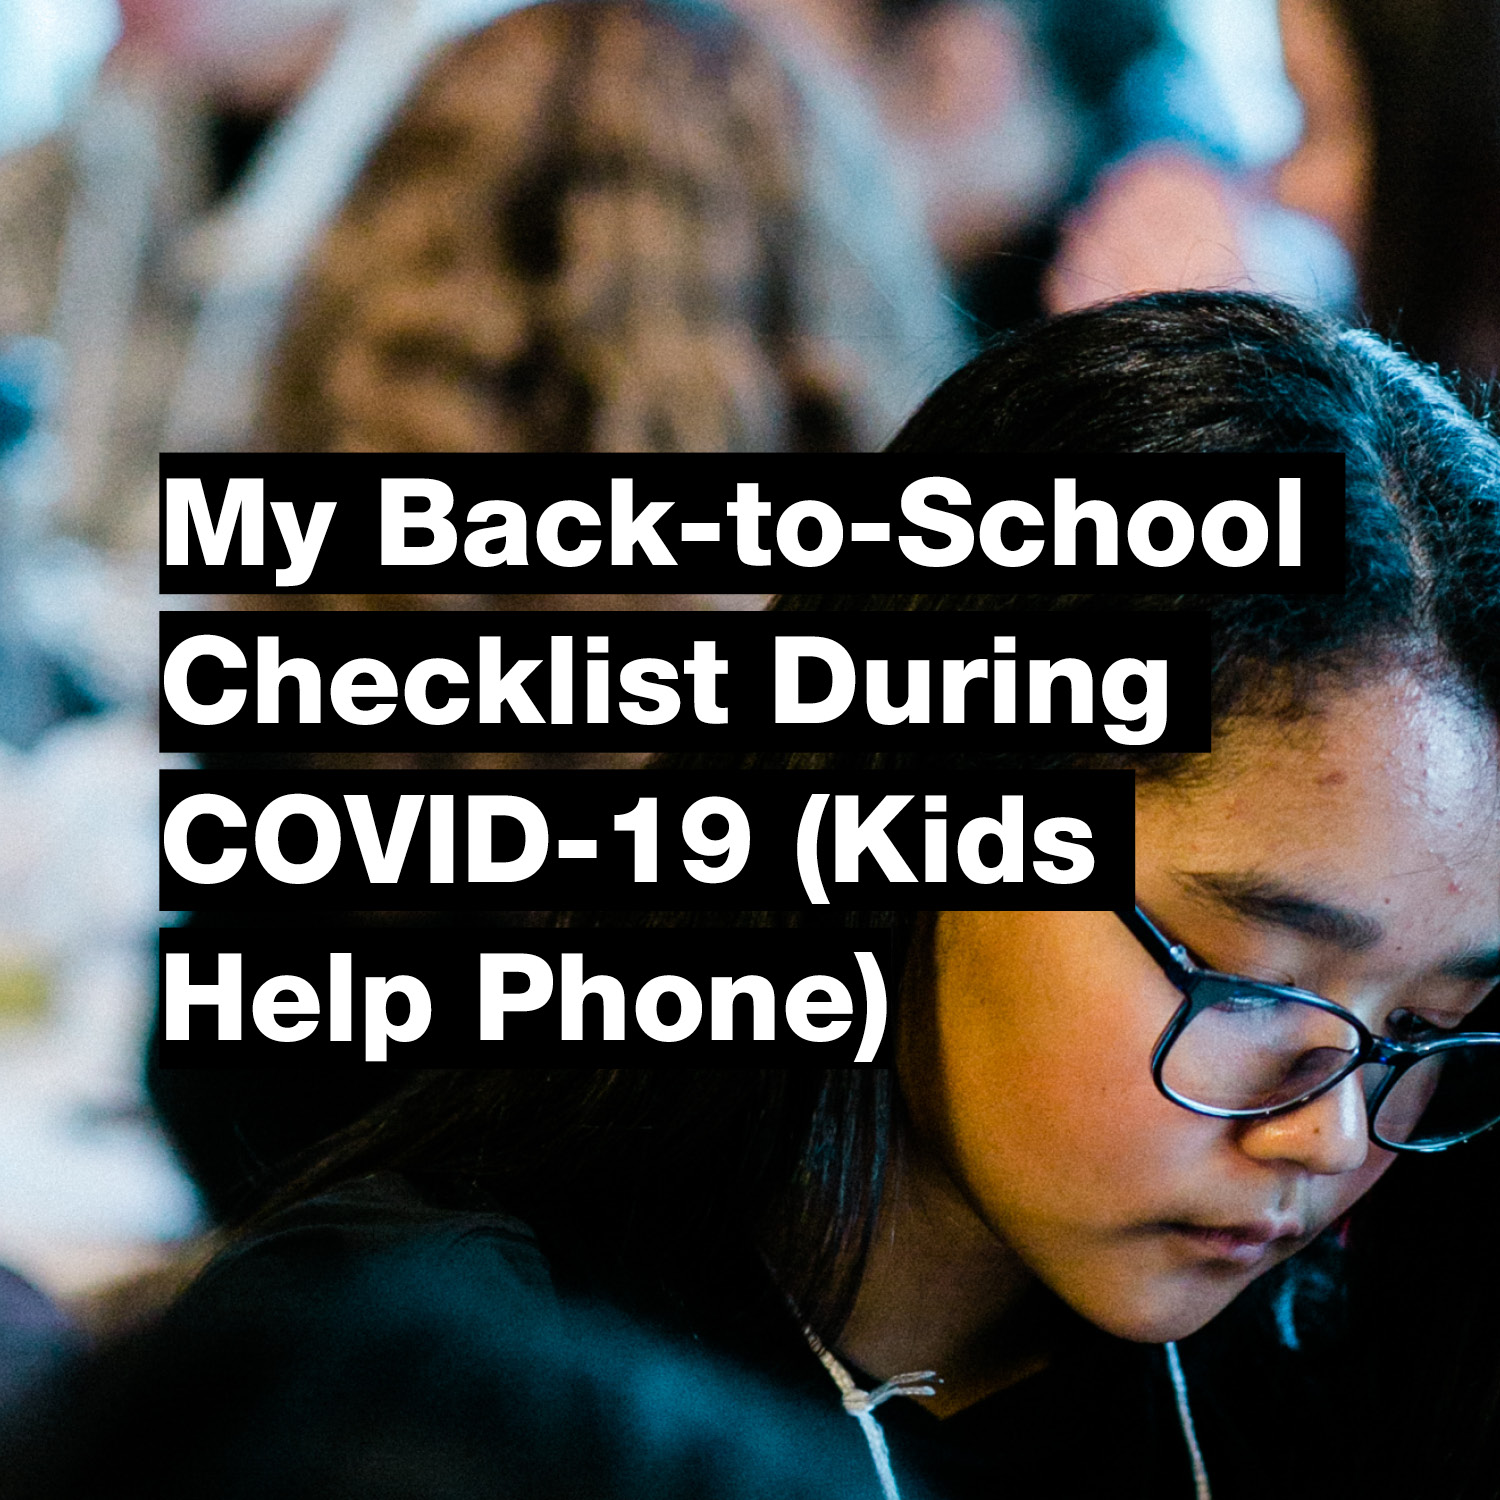 My Back-to-School Checklist During COVID-19